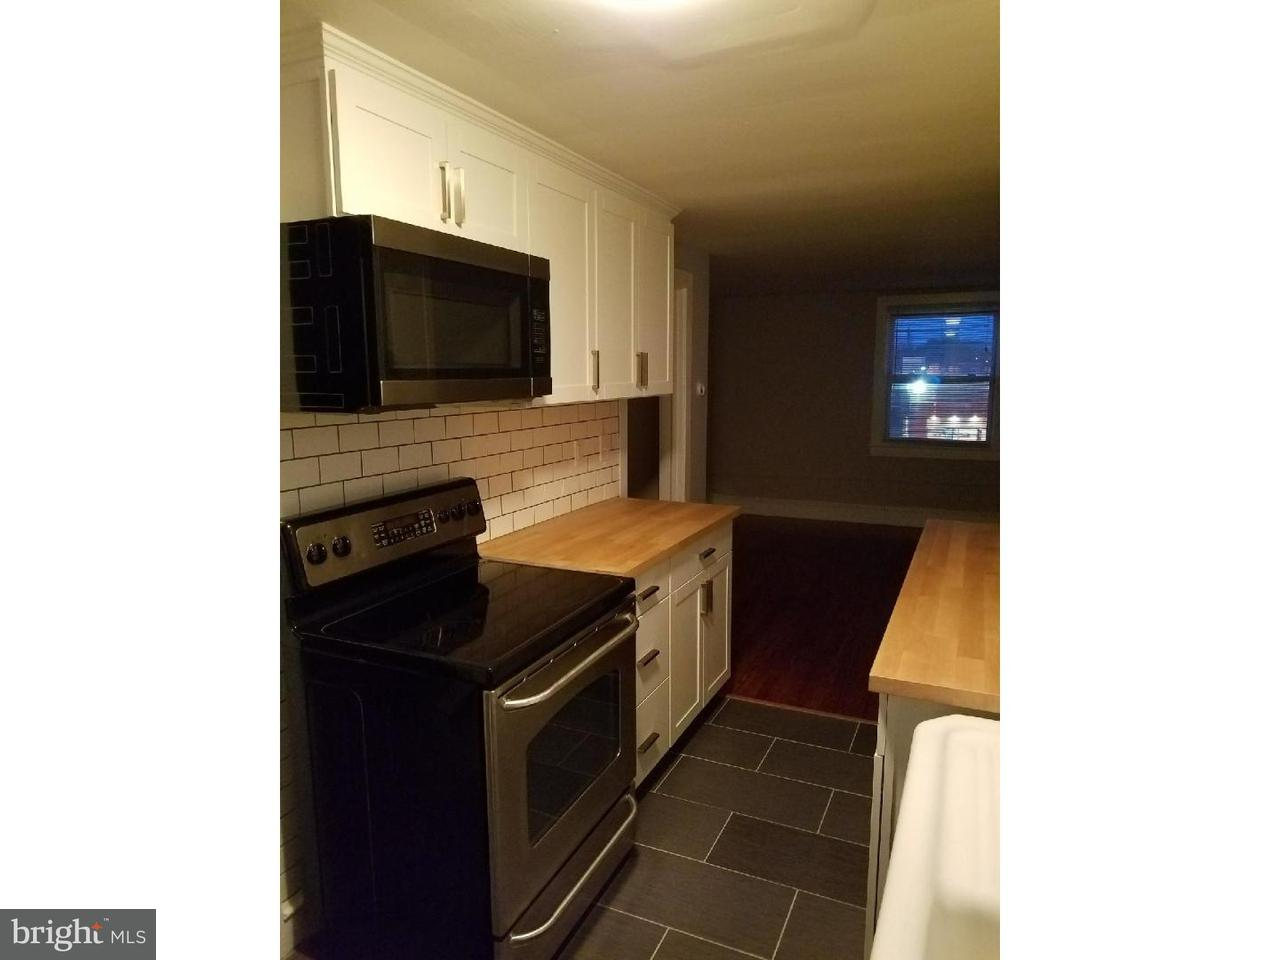 Single Family Home for Rent at 5 E MAIN ST #E Wrightstown, New Jersey 08562 United States